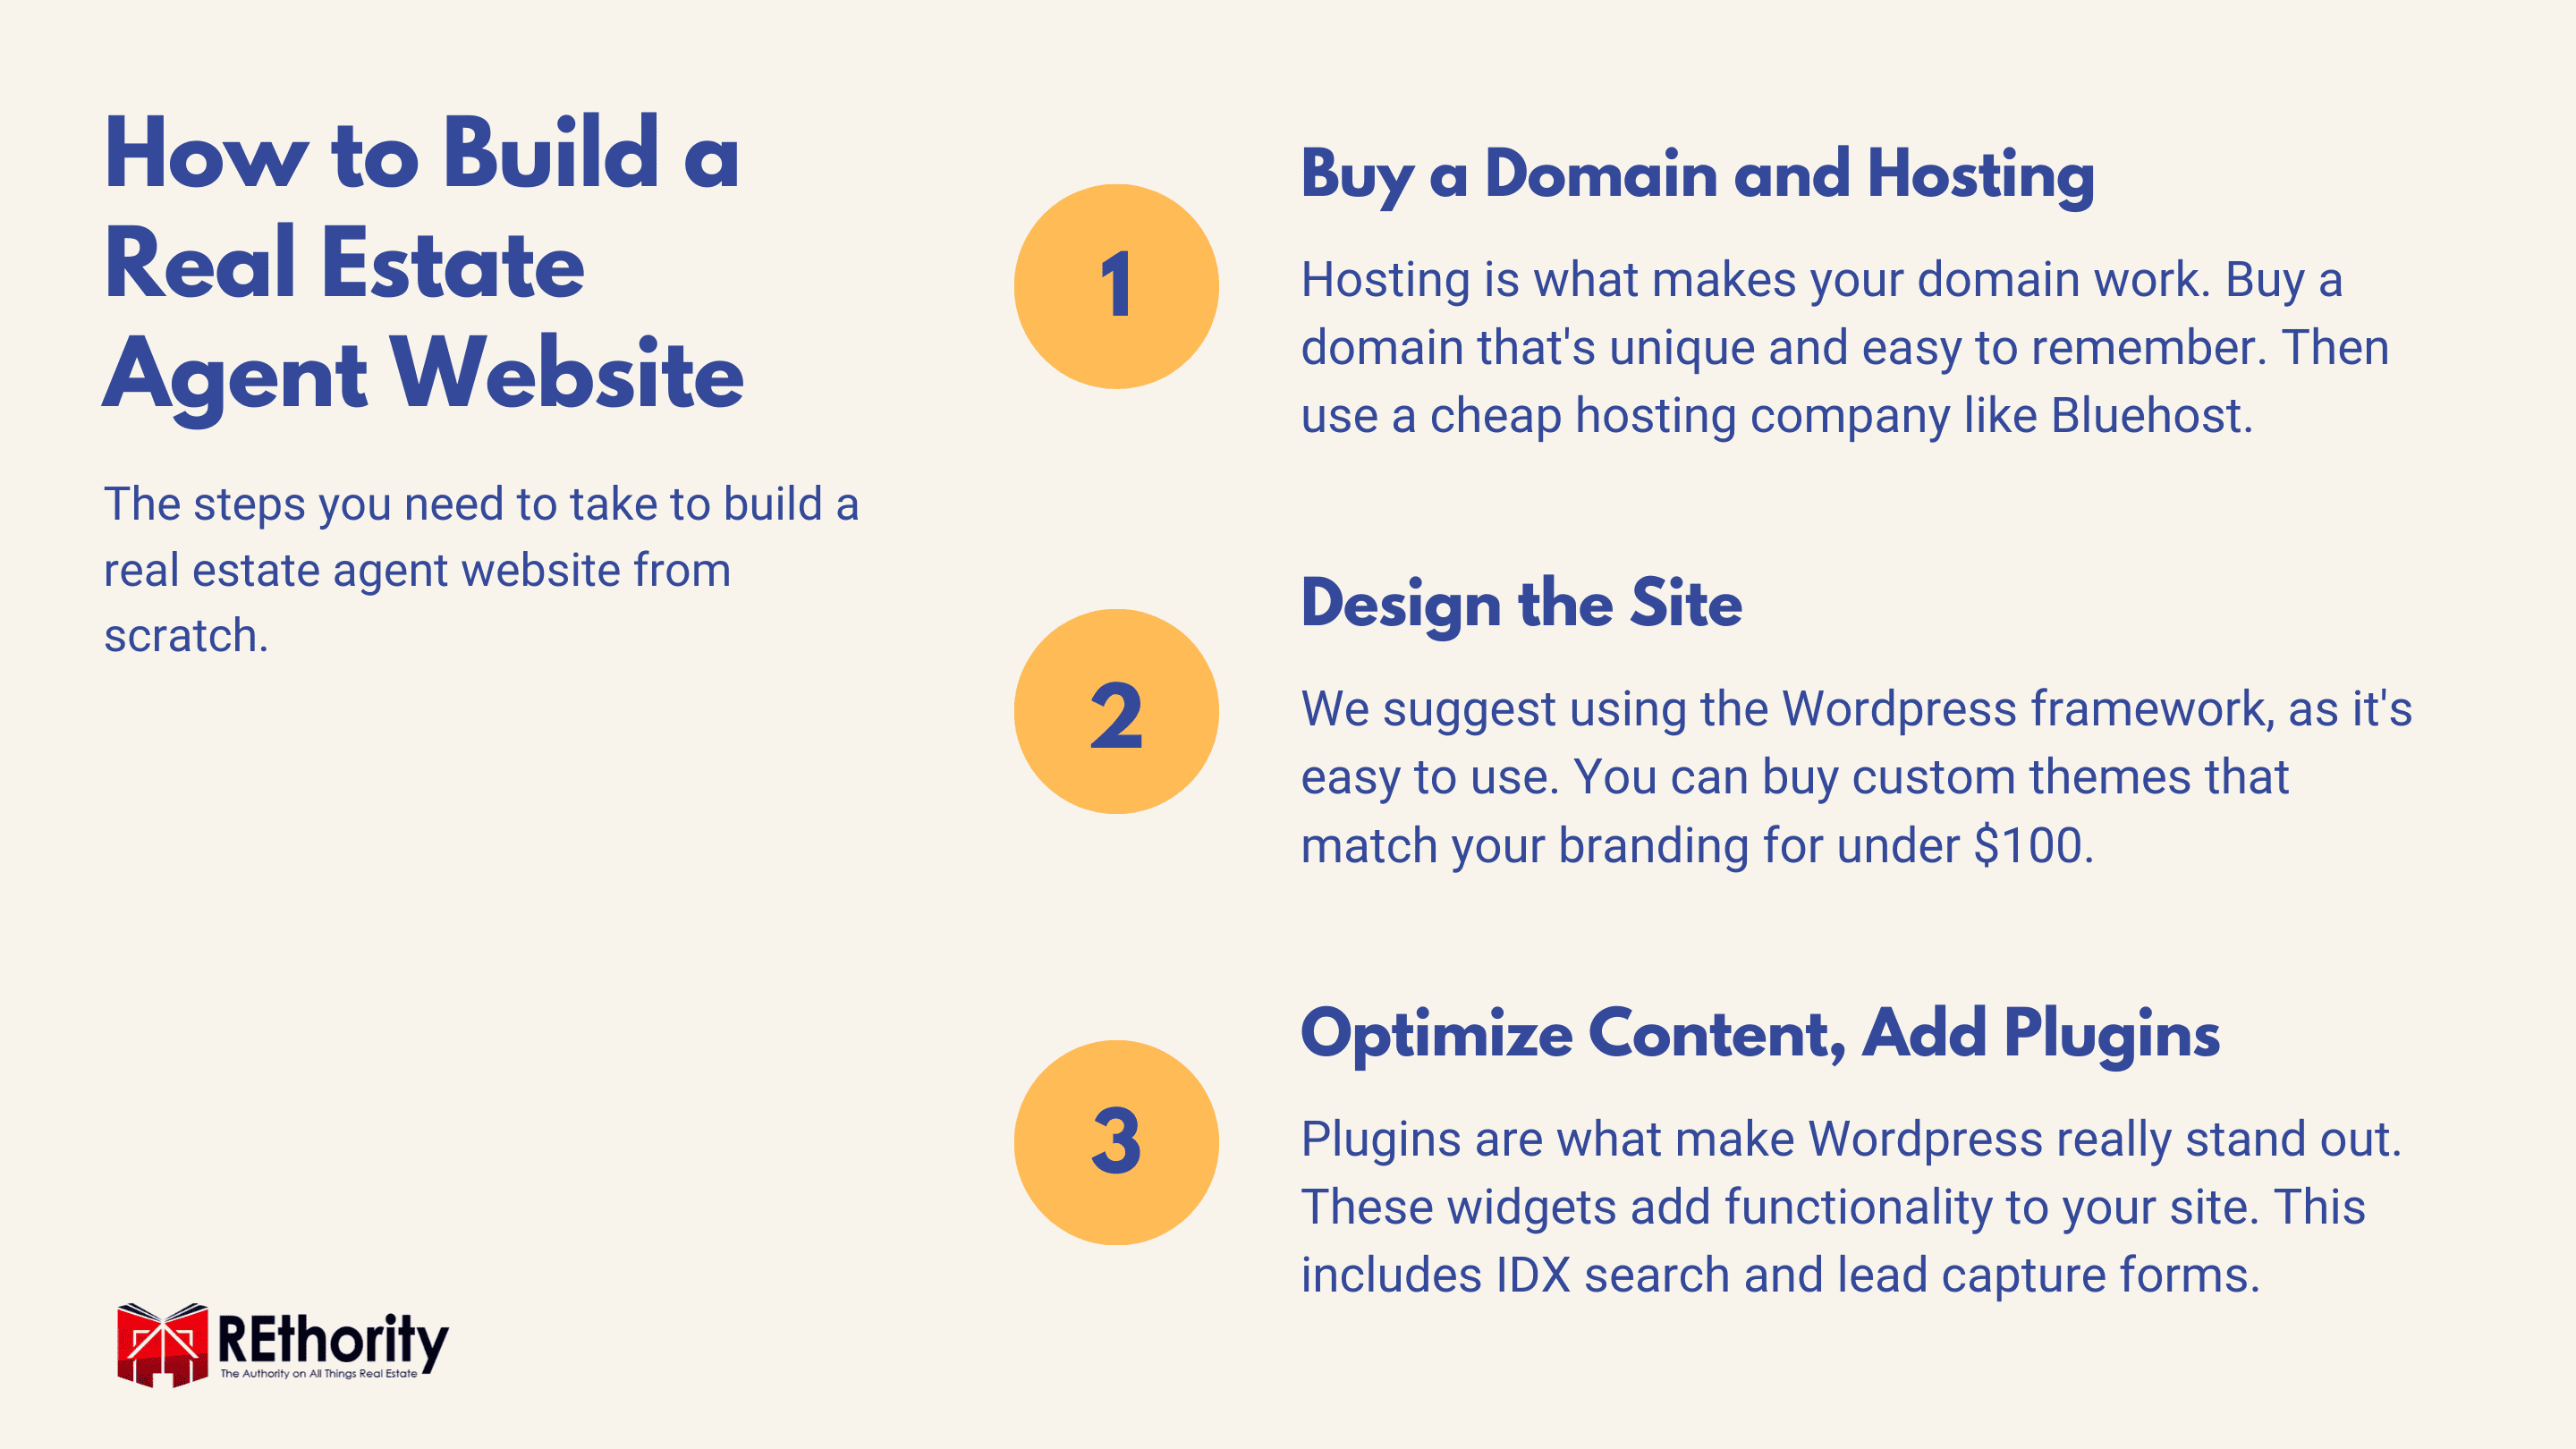 How to Build a Real Estate Agent Website